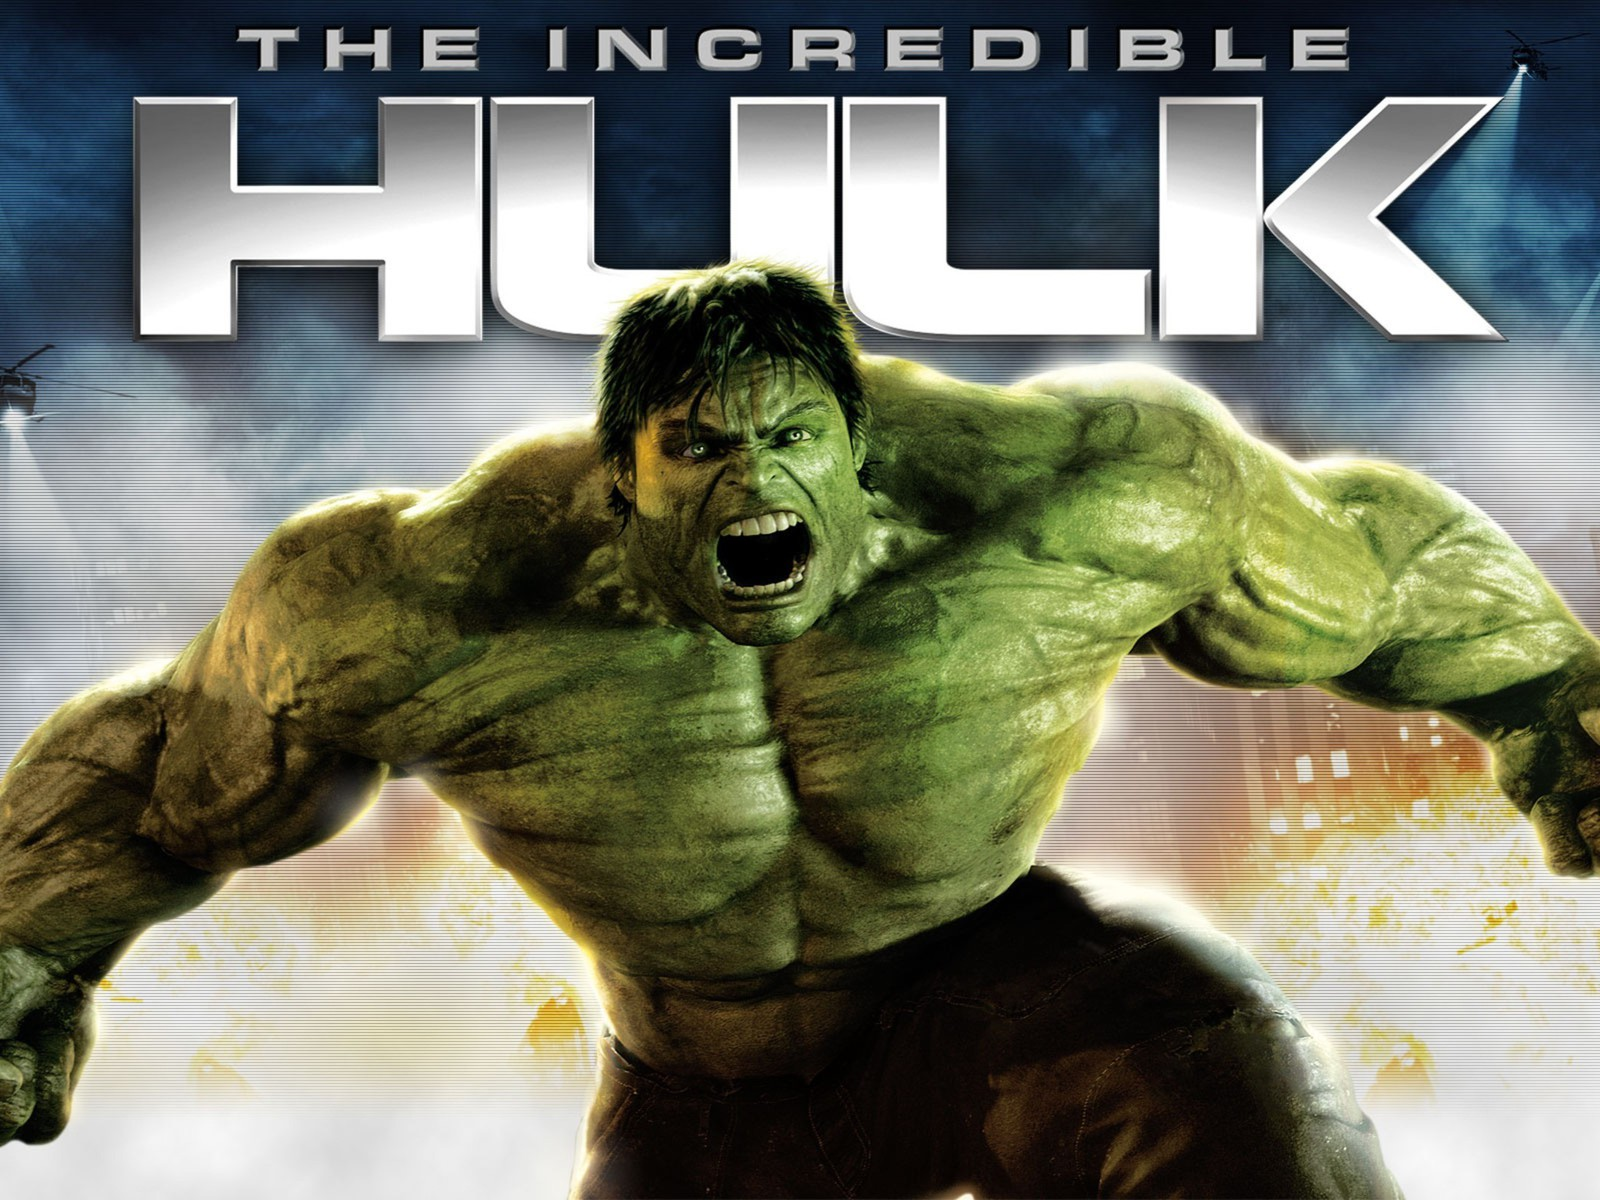 El increible hulk the incredible hulk - 1 1